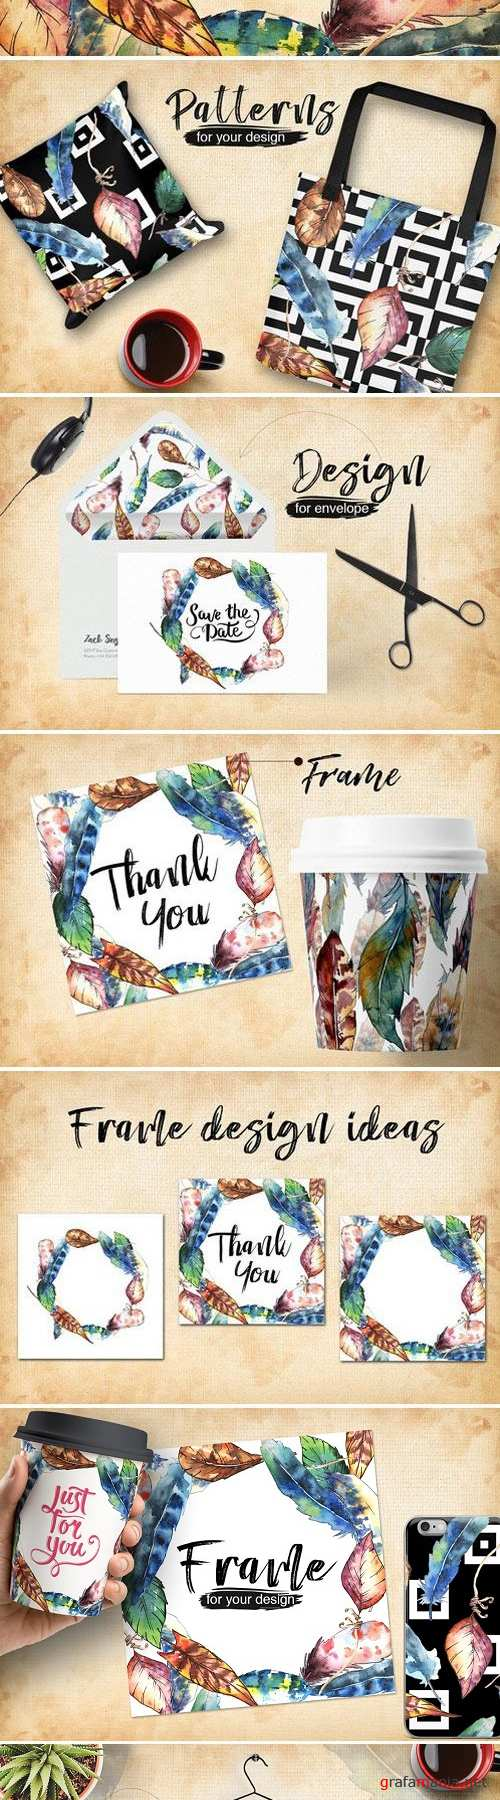 Feather bird PNG watercolor set - 4282935